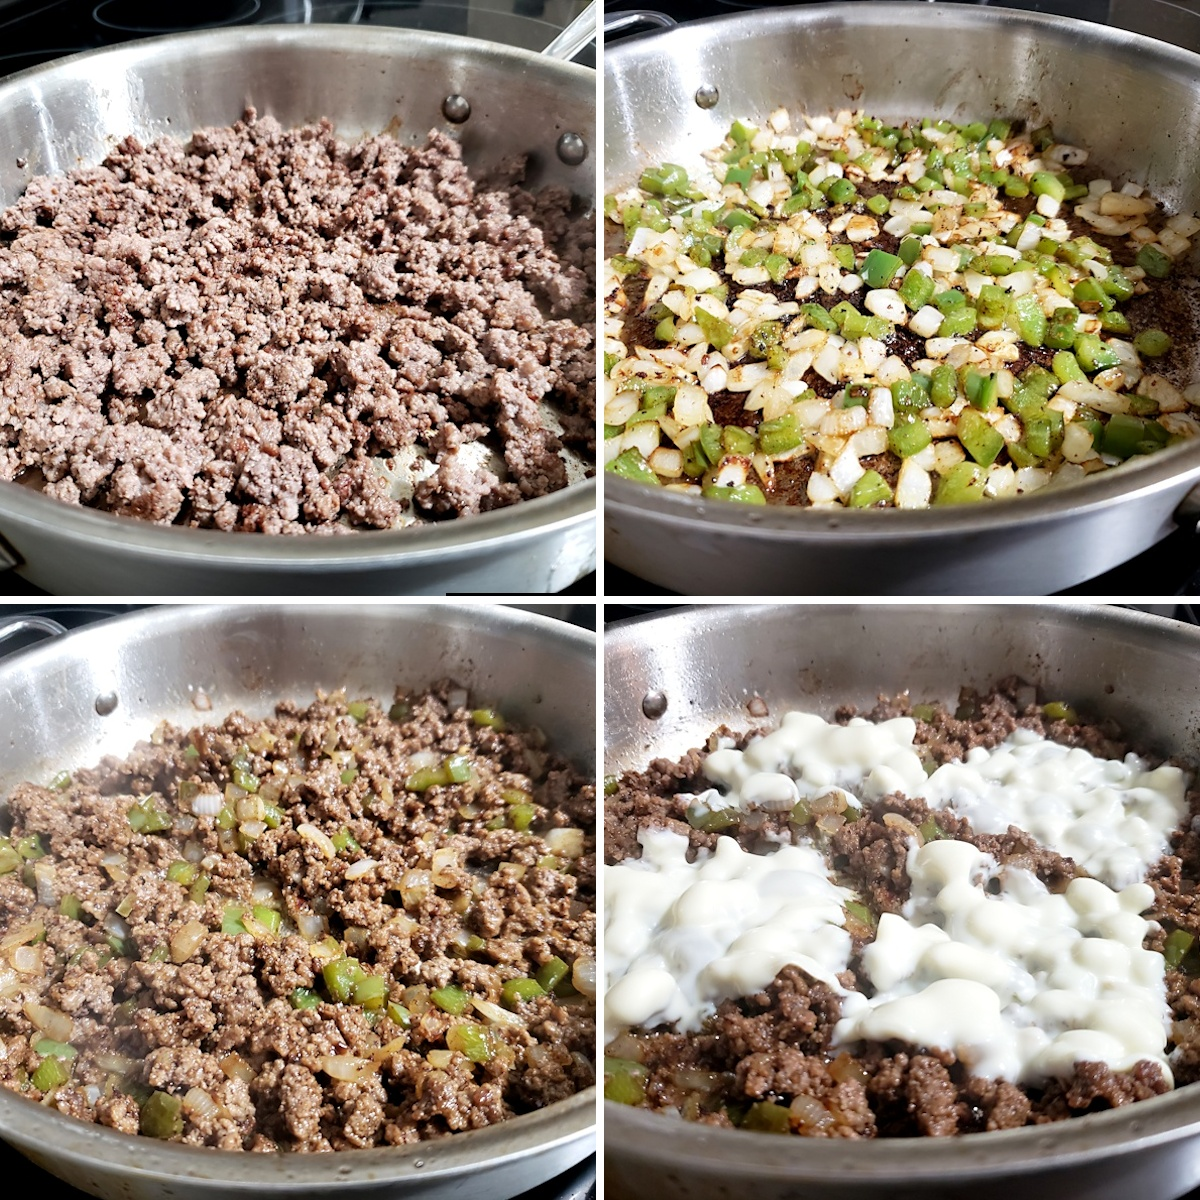 Cooking ground beef, onions, and bell pepper in a saute pan.